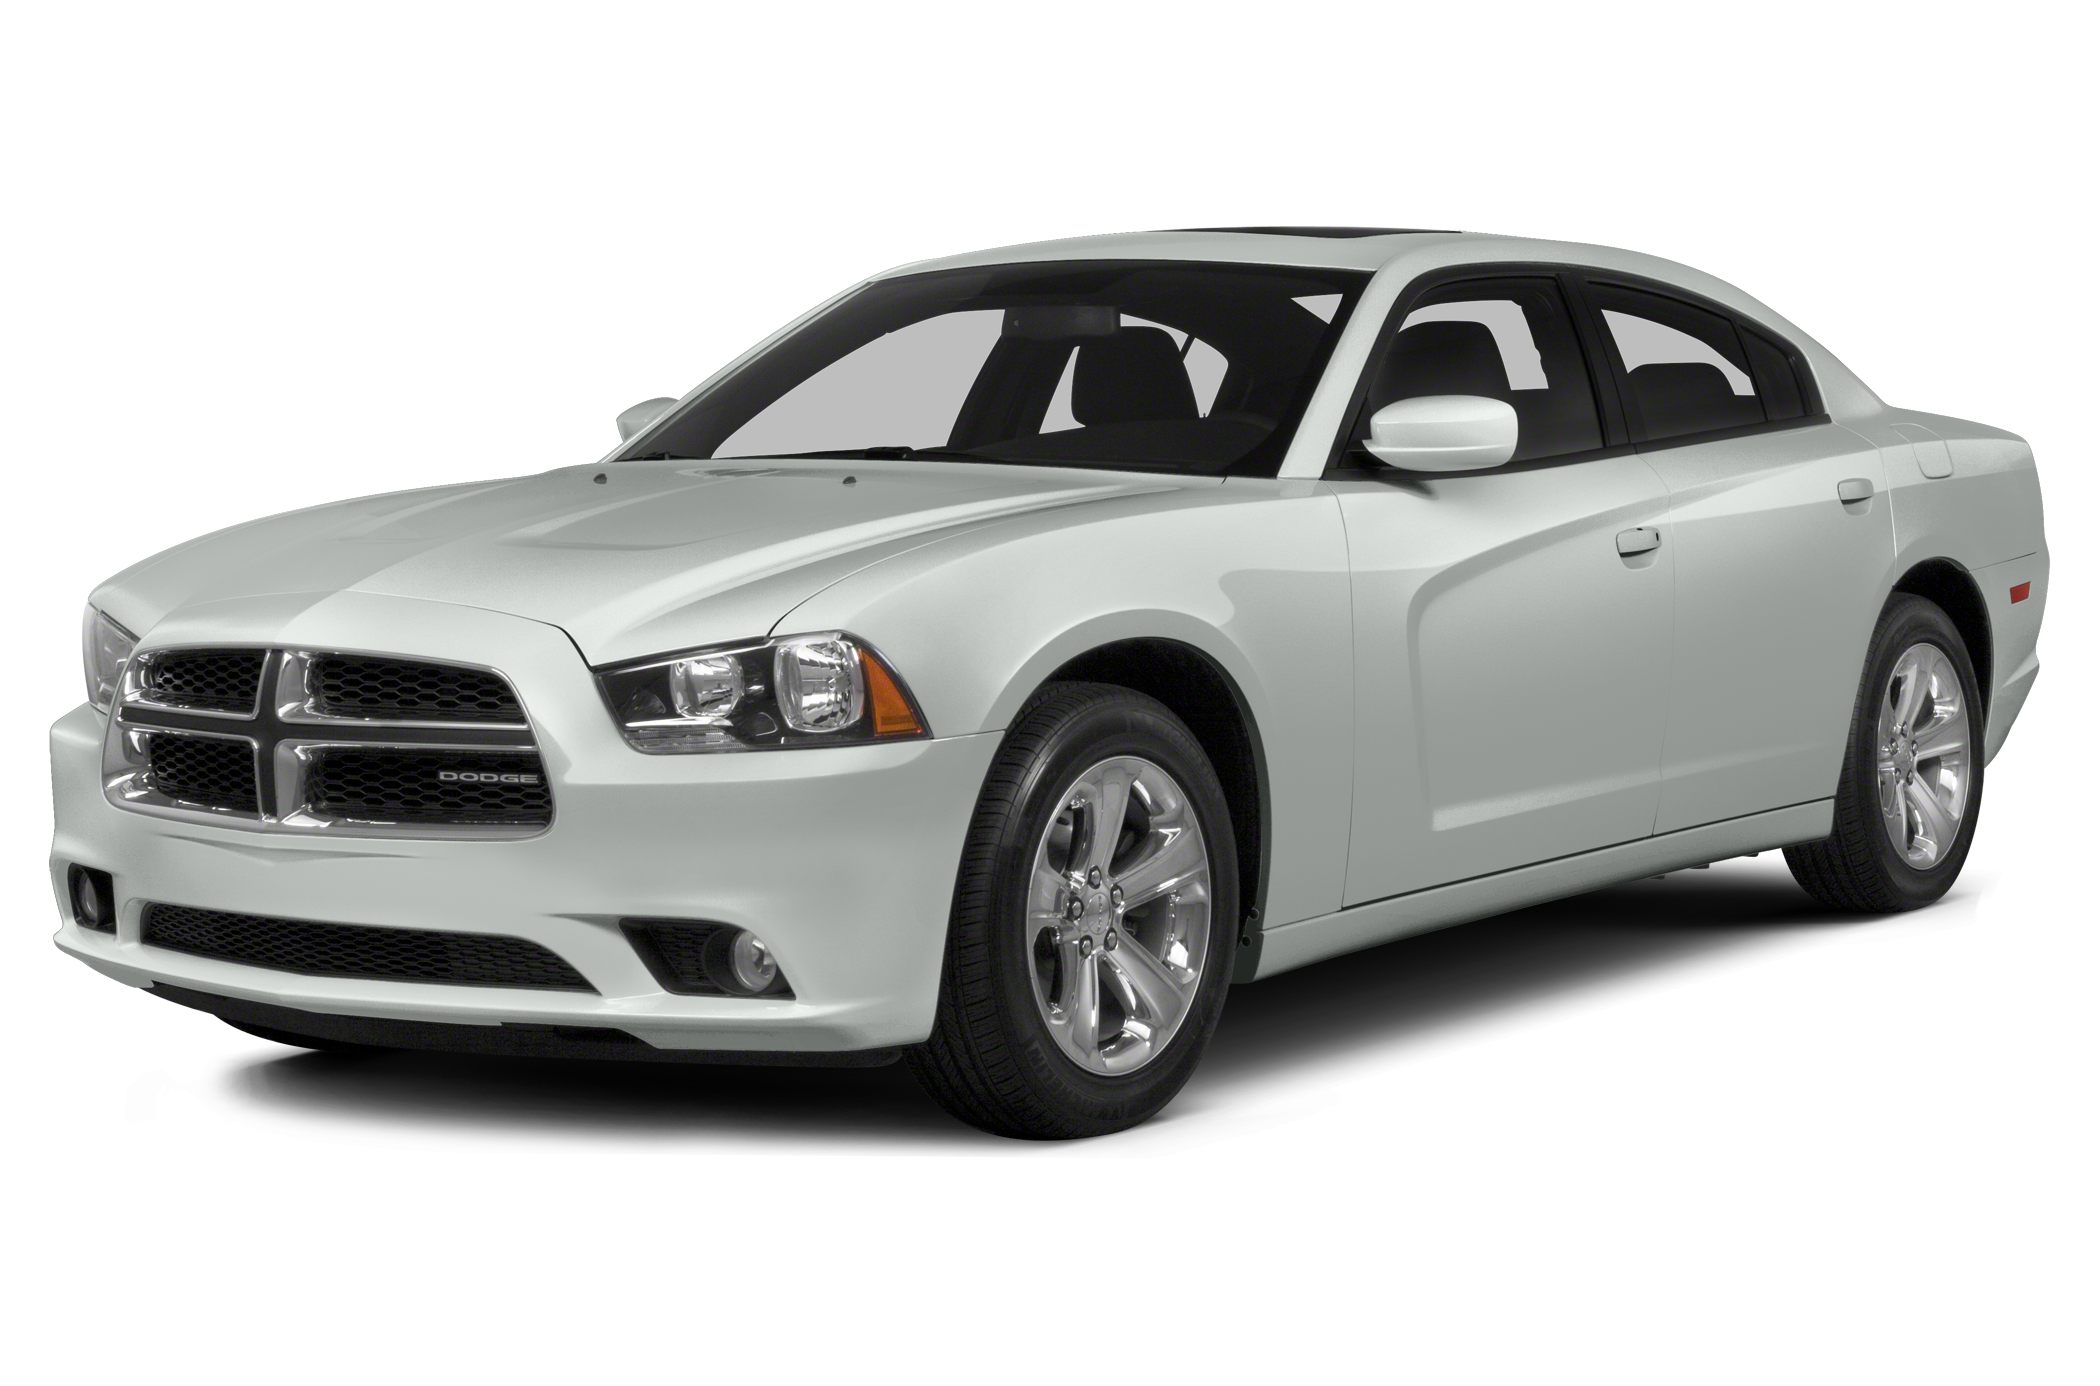 2014 Dodge Charger R/T Sedan for sale in Jackson for $27,000 with 32,153 miles.